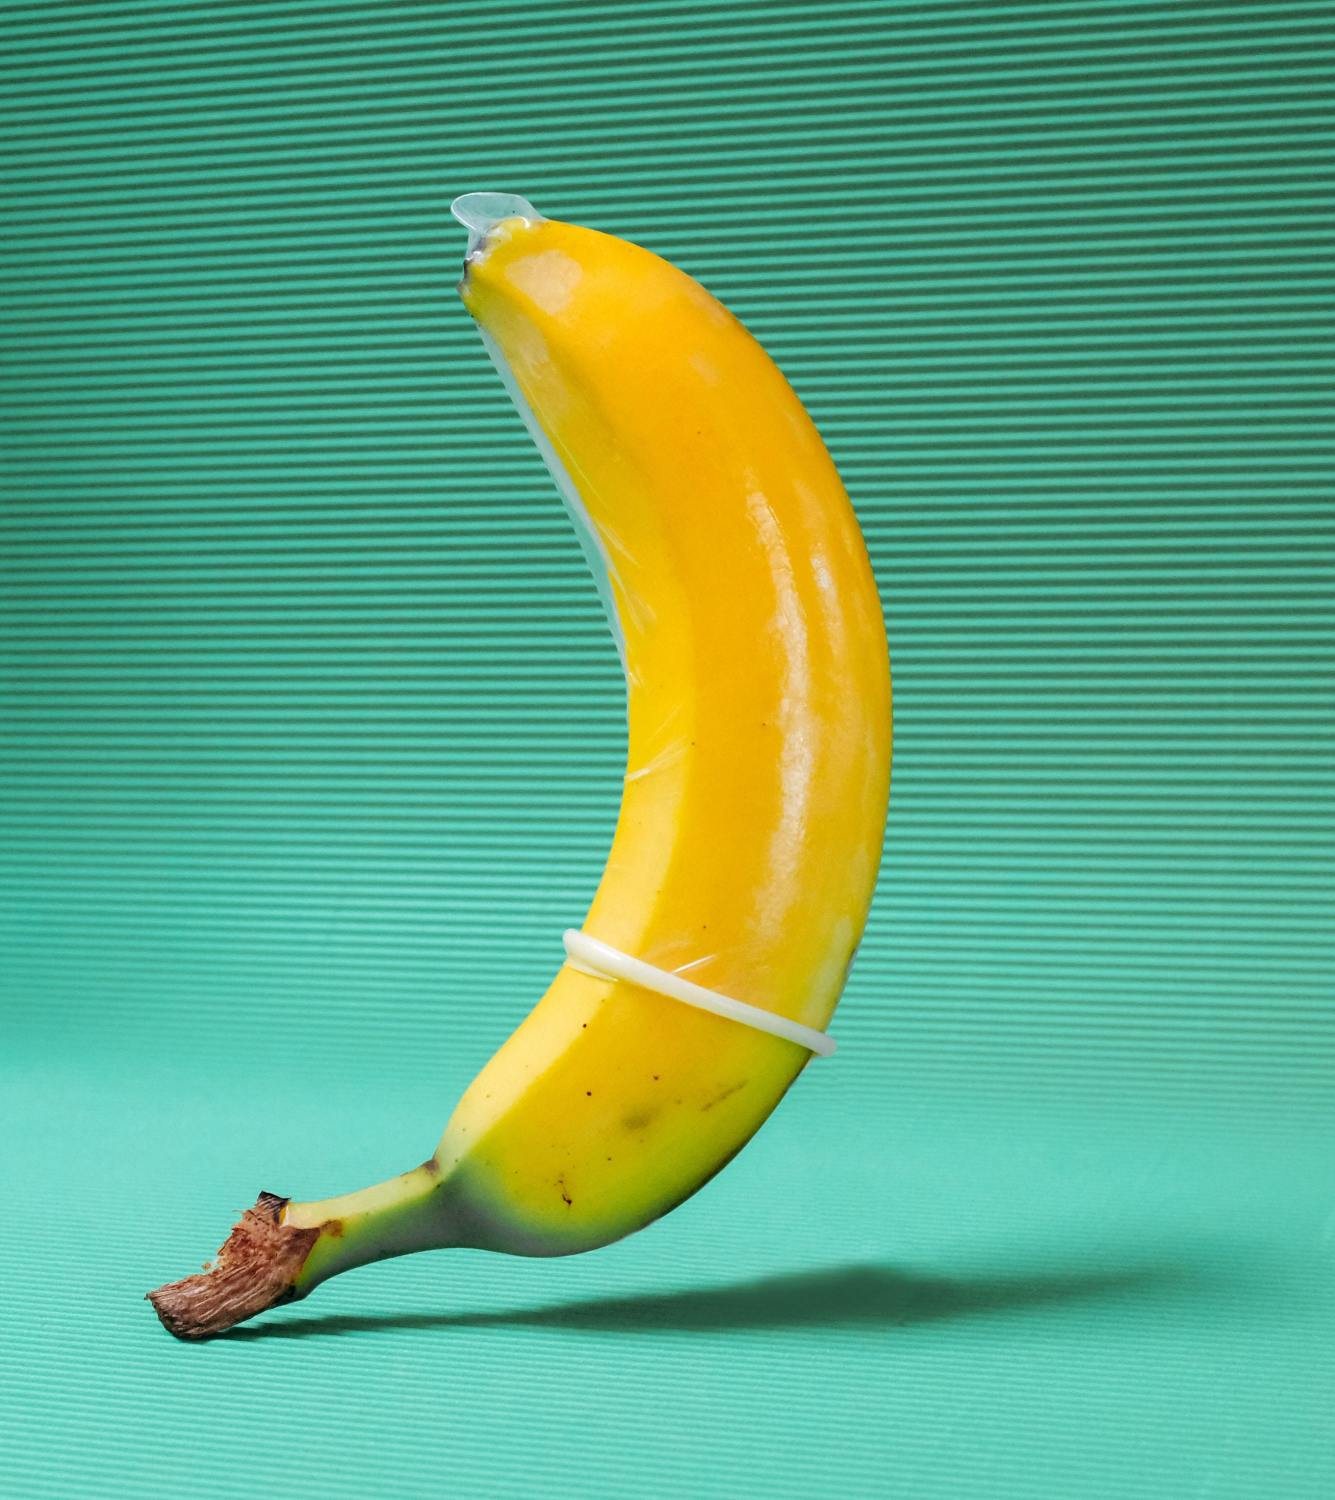 guys are apparently pleasuring themselves using bananas, and it's a problem